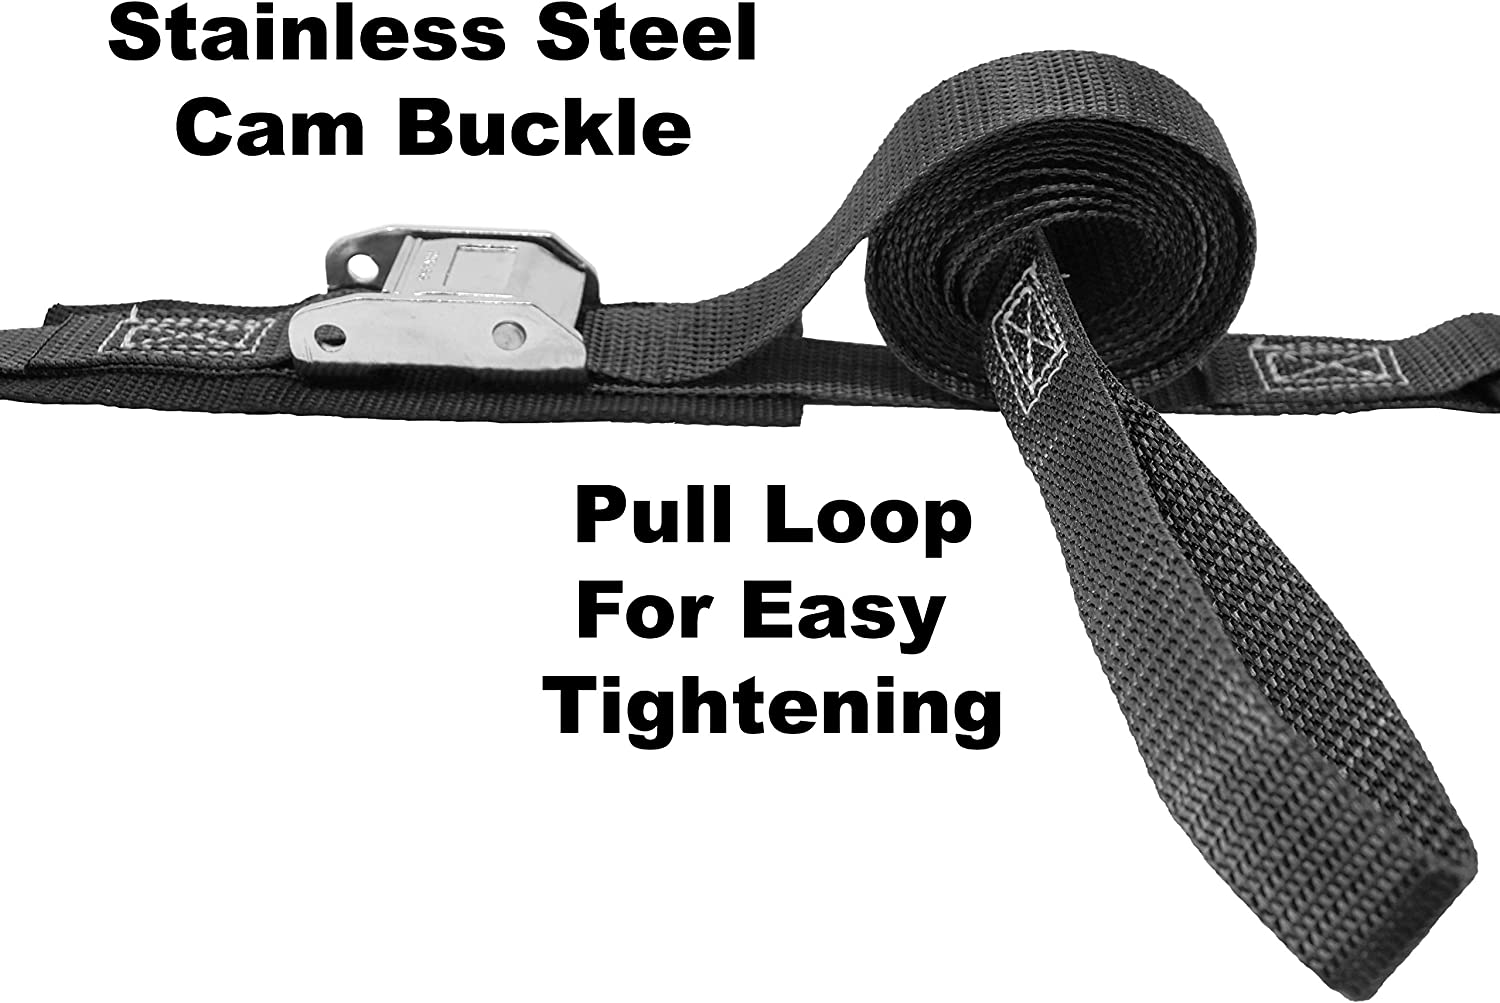 Strap Length 8.5 Ft Pull Loop for Easy Tightening 1 Inch Stainless Steel Cam Buckle Tie Down Stainless Steel S Hook On Each End Protective Pad Under Buckle Polyester Tie-Down Webbing.